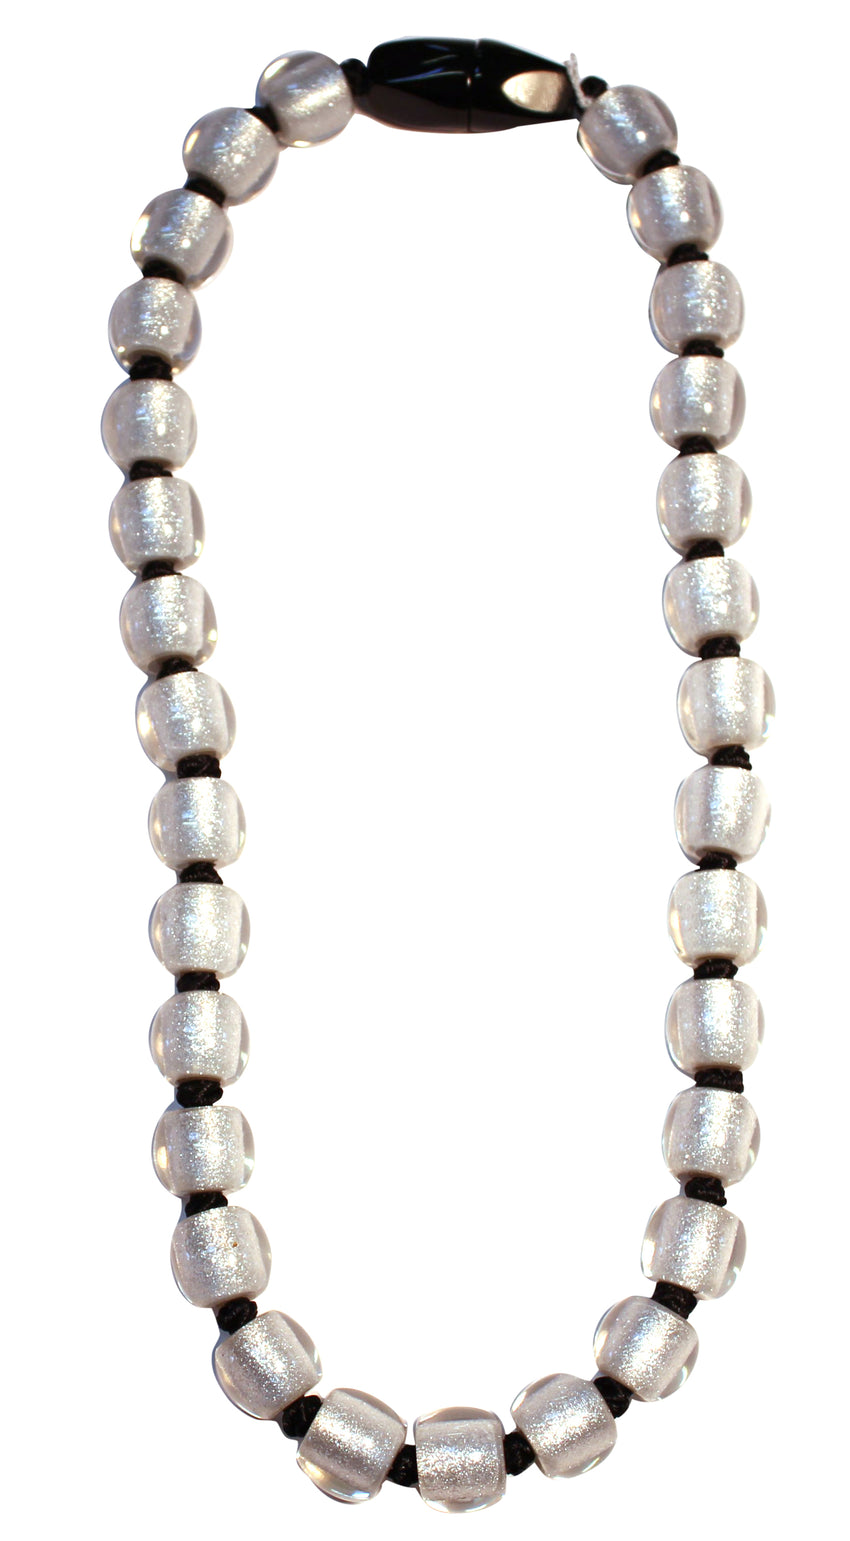 4010119S00PQ30 Colourful Beads silver Bead Black S00P Q30